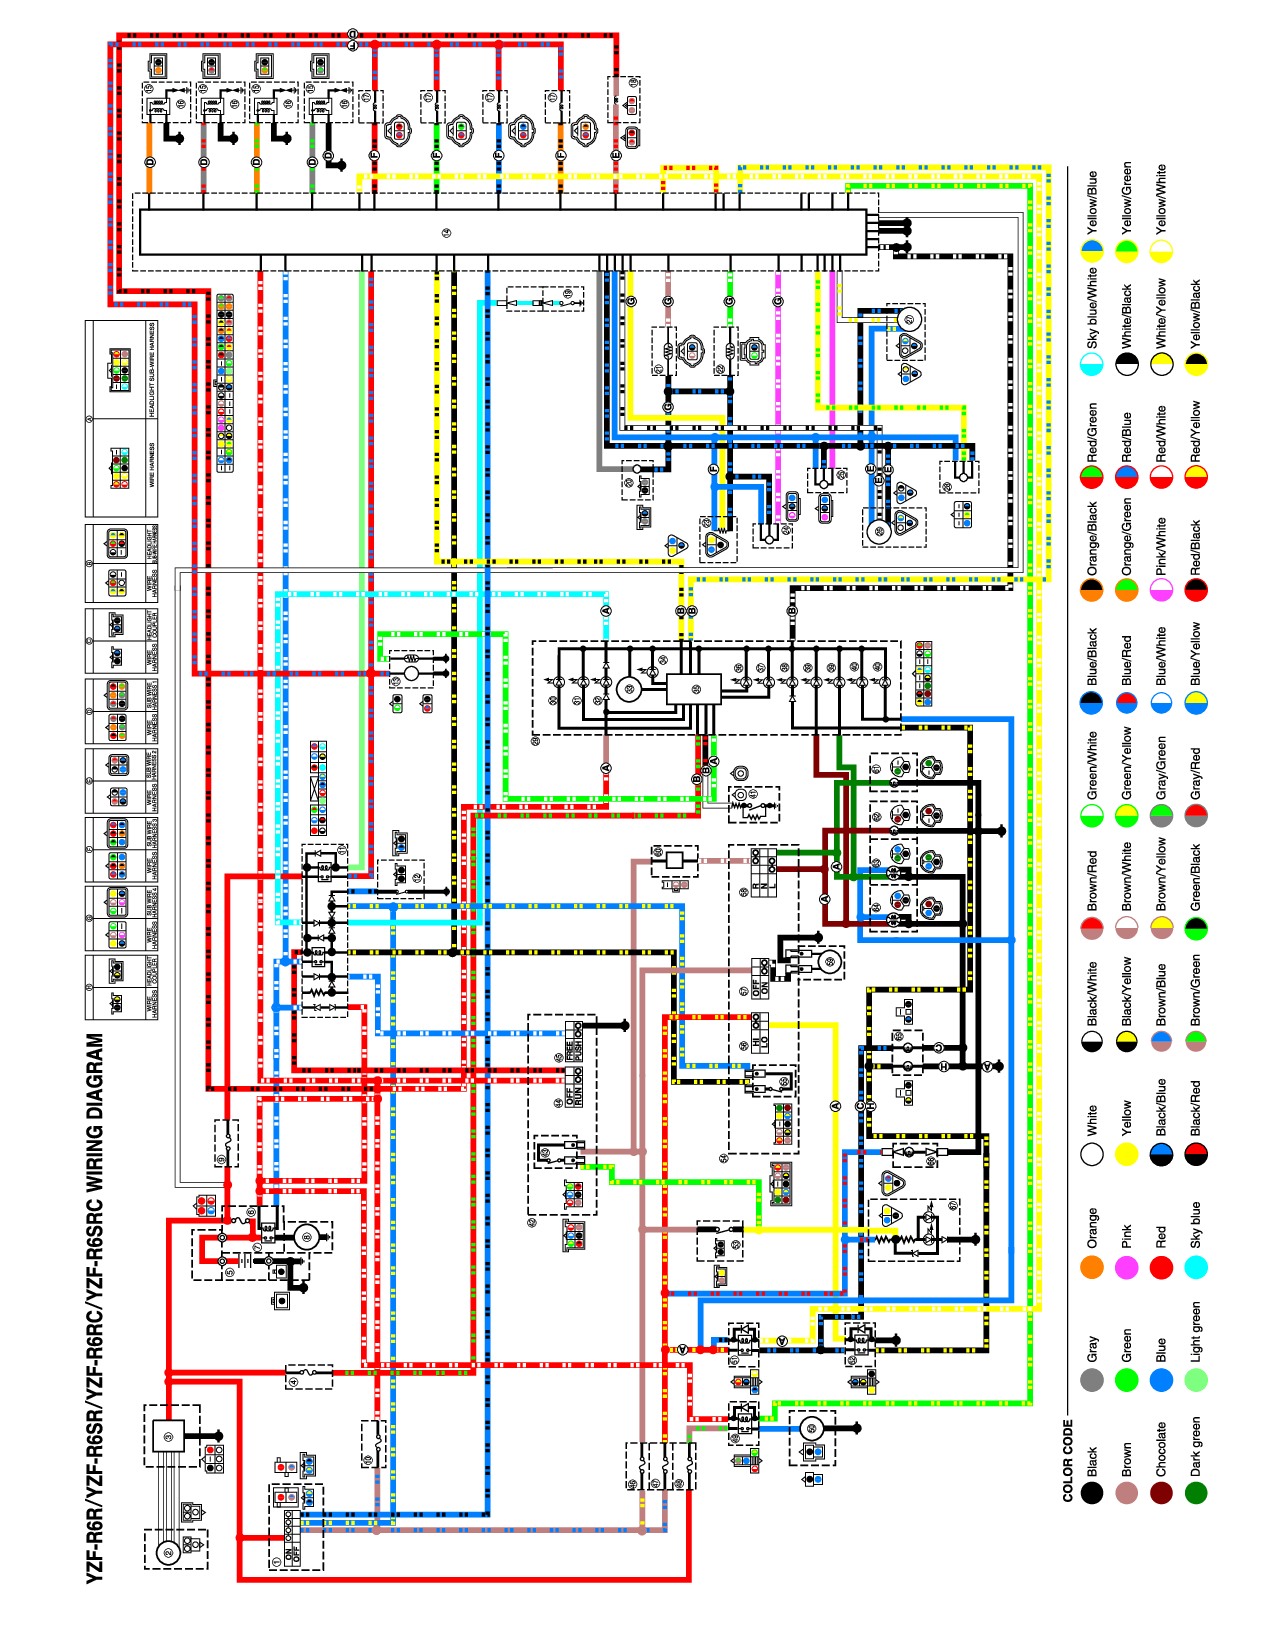 fz6 wiring diagram wiring diagrams bib 2014 yamaha fz6 wiring diagram wiring diagram for you 2006 yamaha fz6 wiring diagram 2004 fz6